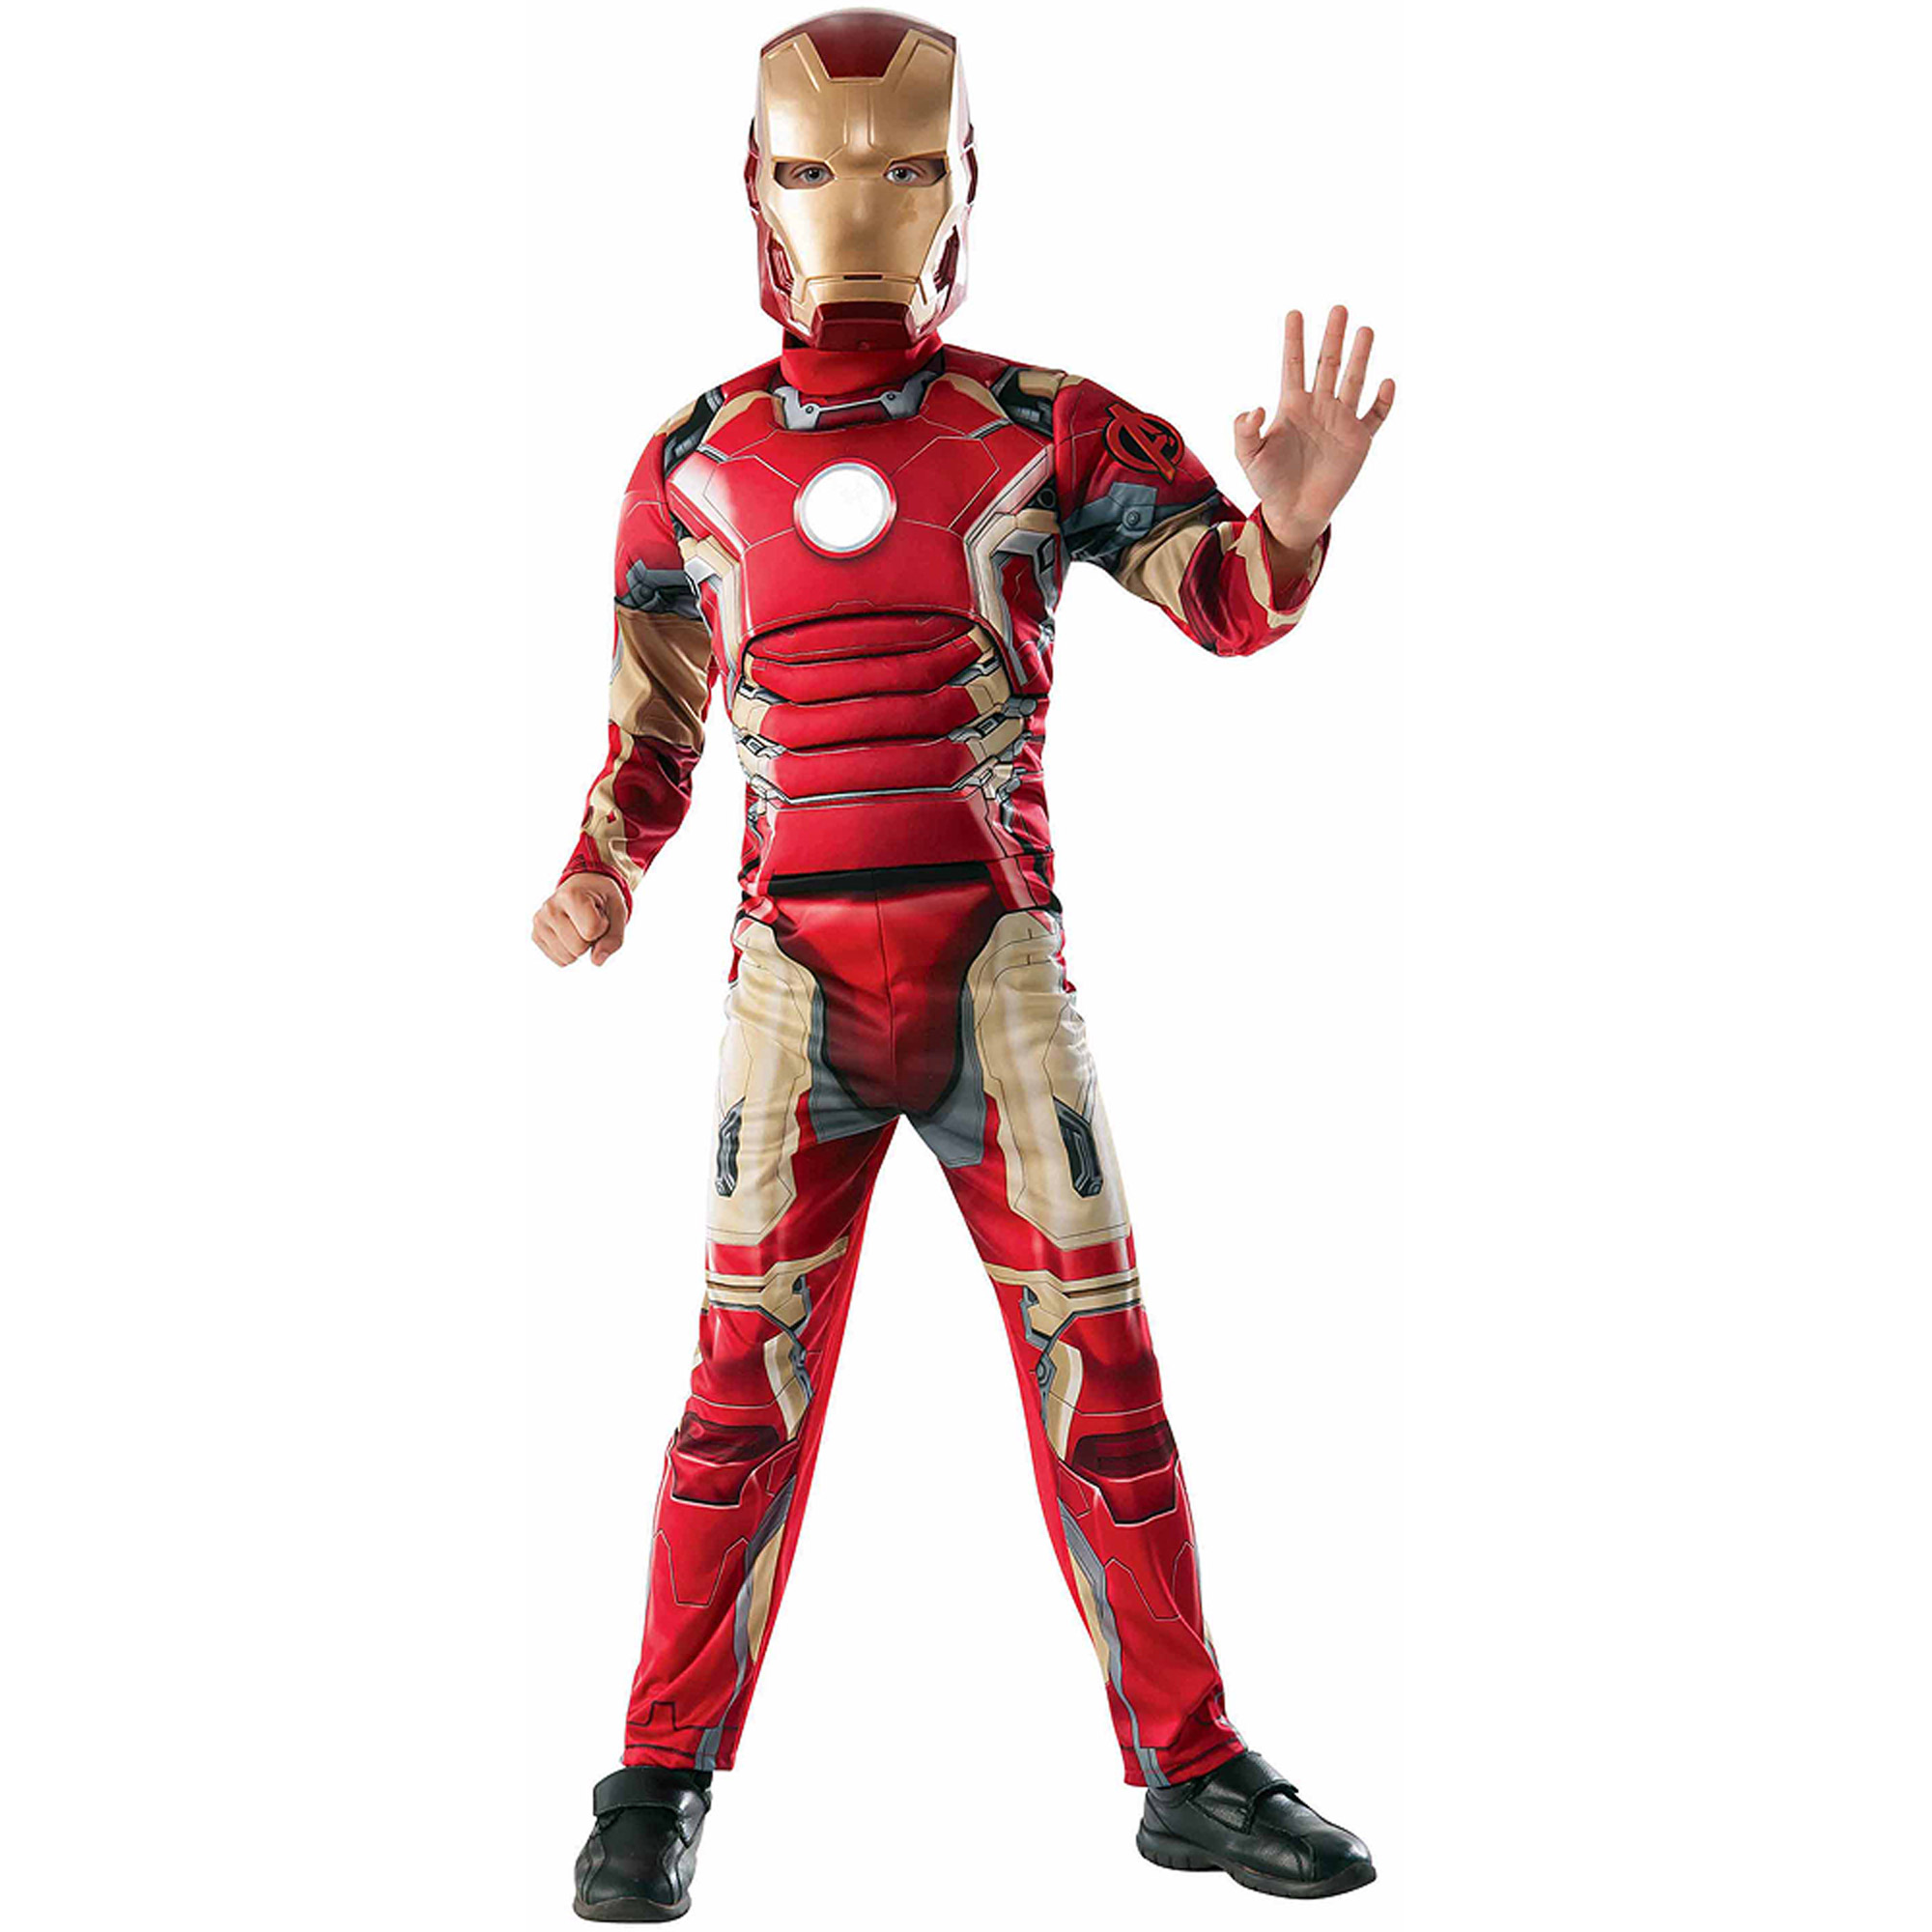 Avengers Iron Man Muscle Chest Child Dress Up / Role Play Costume